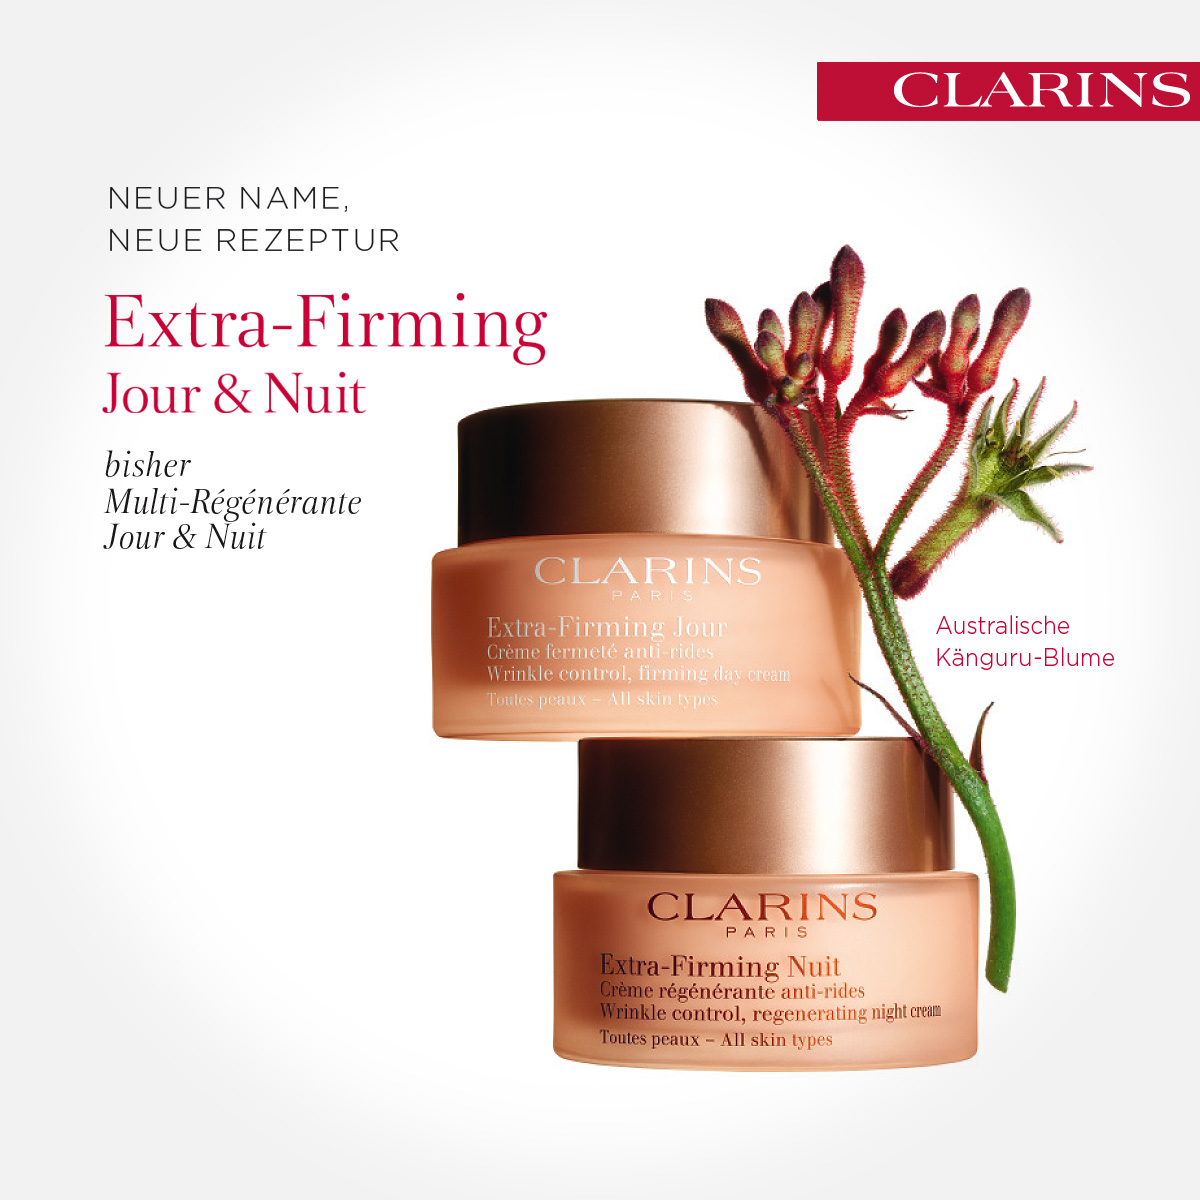 Clarins_Extra-Firming_1200x1200